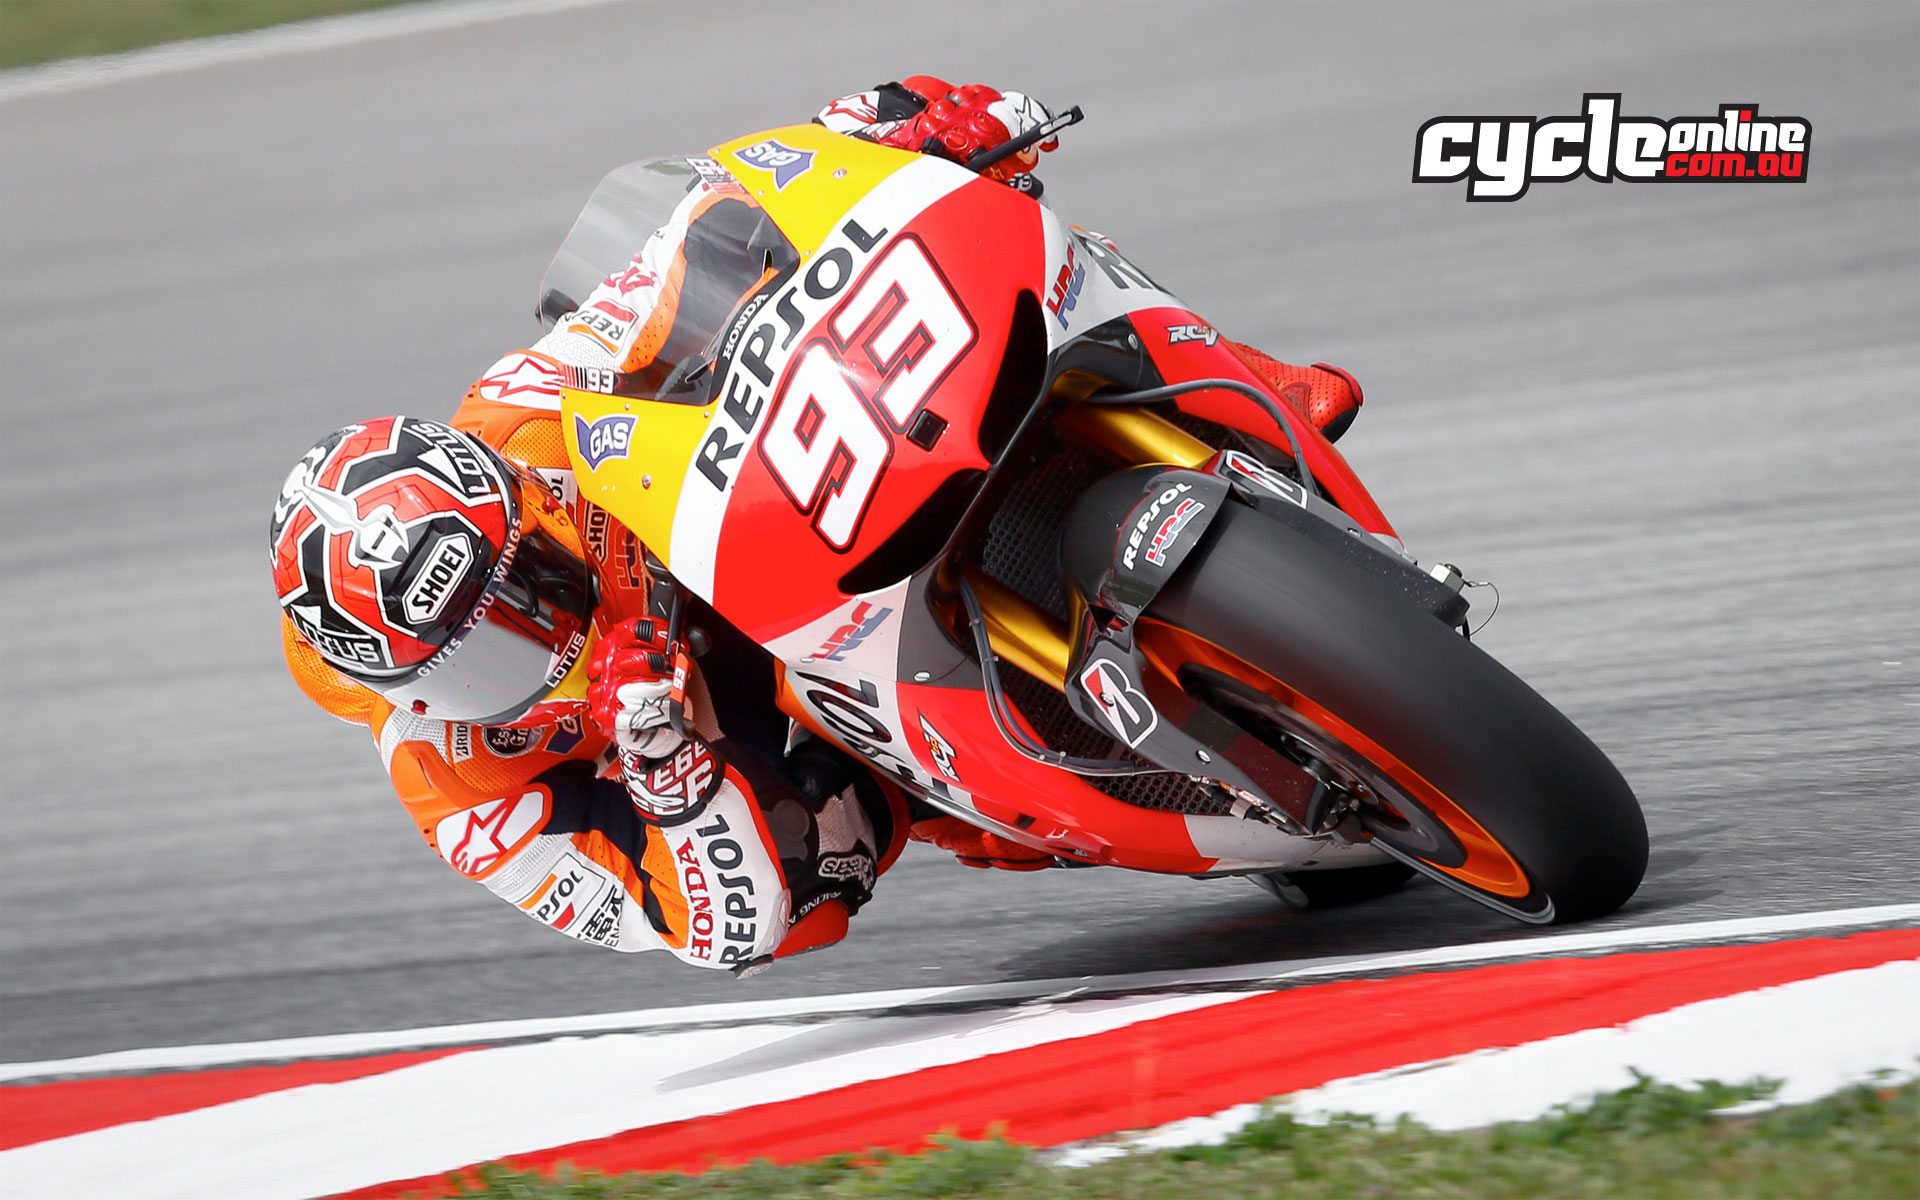 Wednesday wallpaper marc marquez cycleonline voltagebd Images